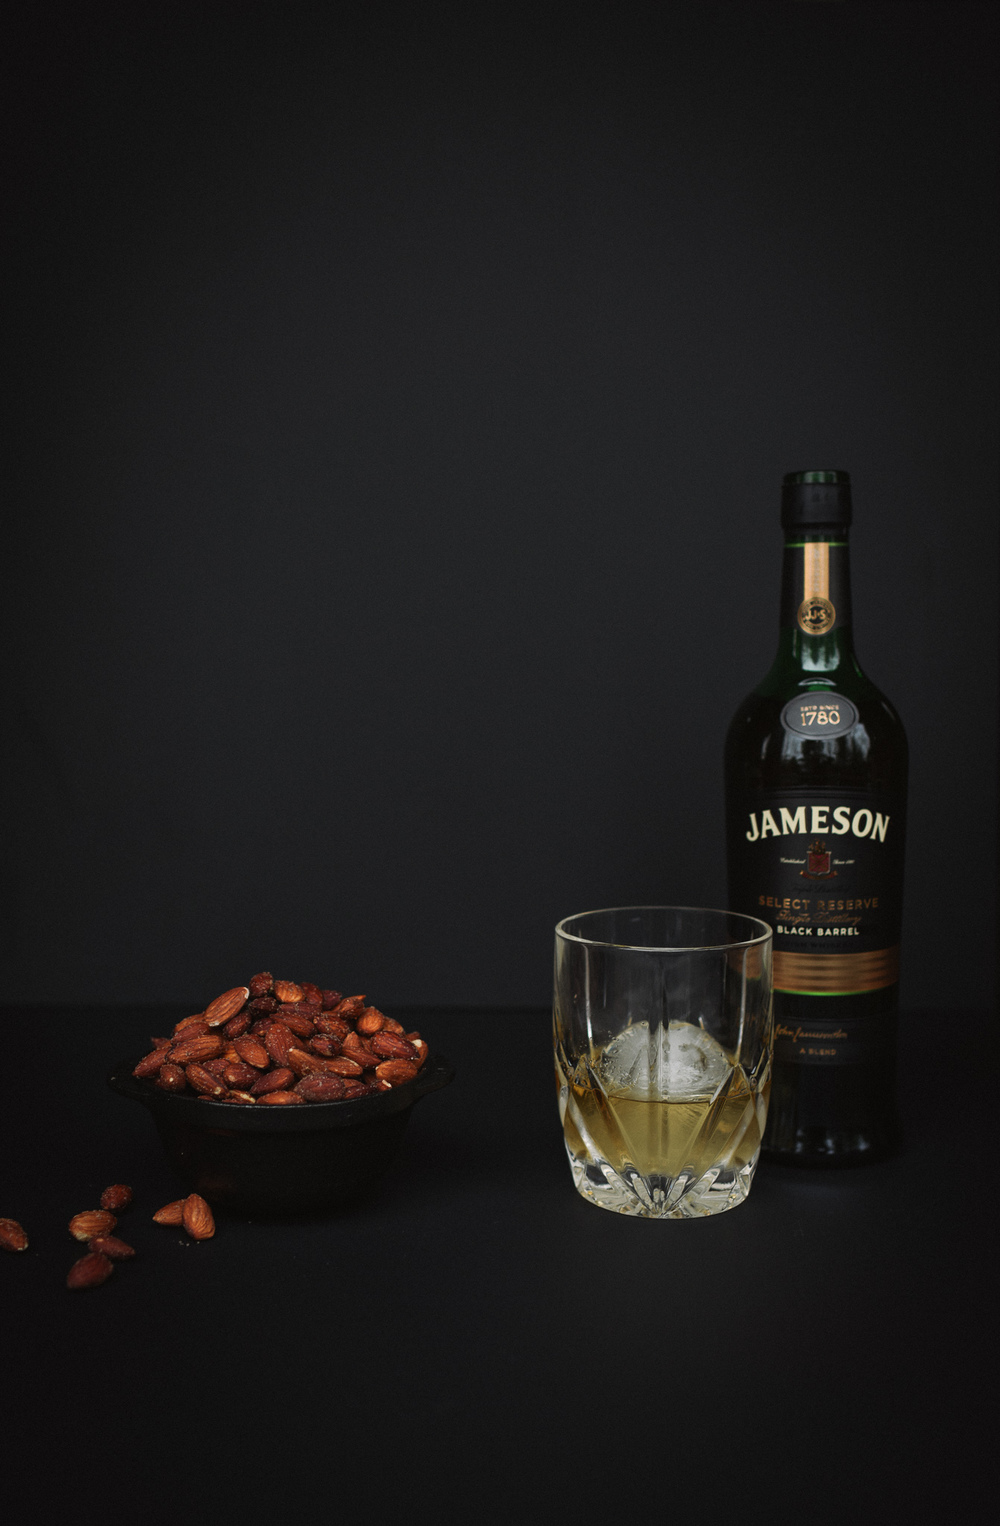 The Irish Classic: grab any whiskey from Ireland. Pour your Jameson (or whichever brand you choose) over a large ice cube for sipping. Pair this with our Smoked Almonds recipe. Photo by Chelsea Lane.